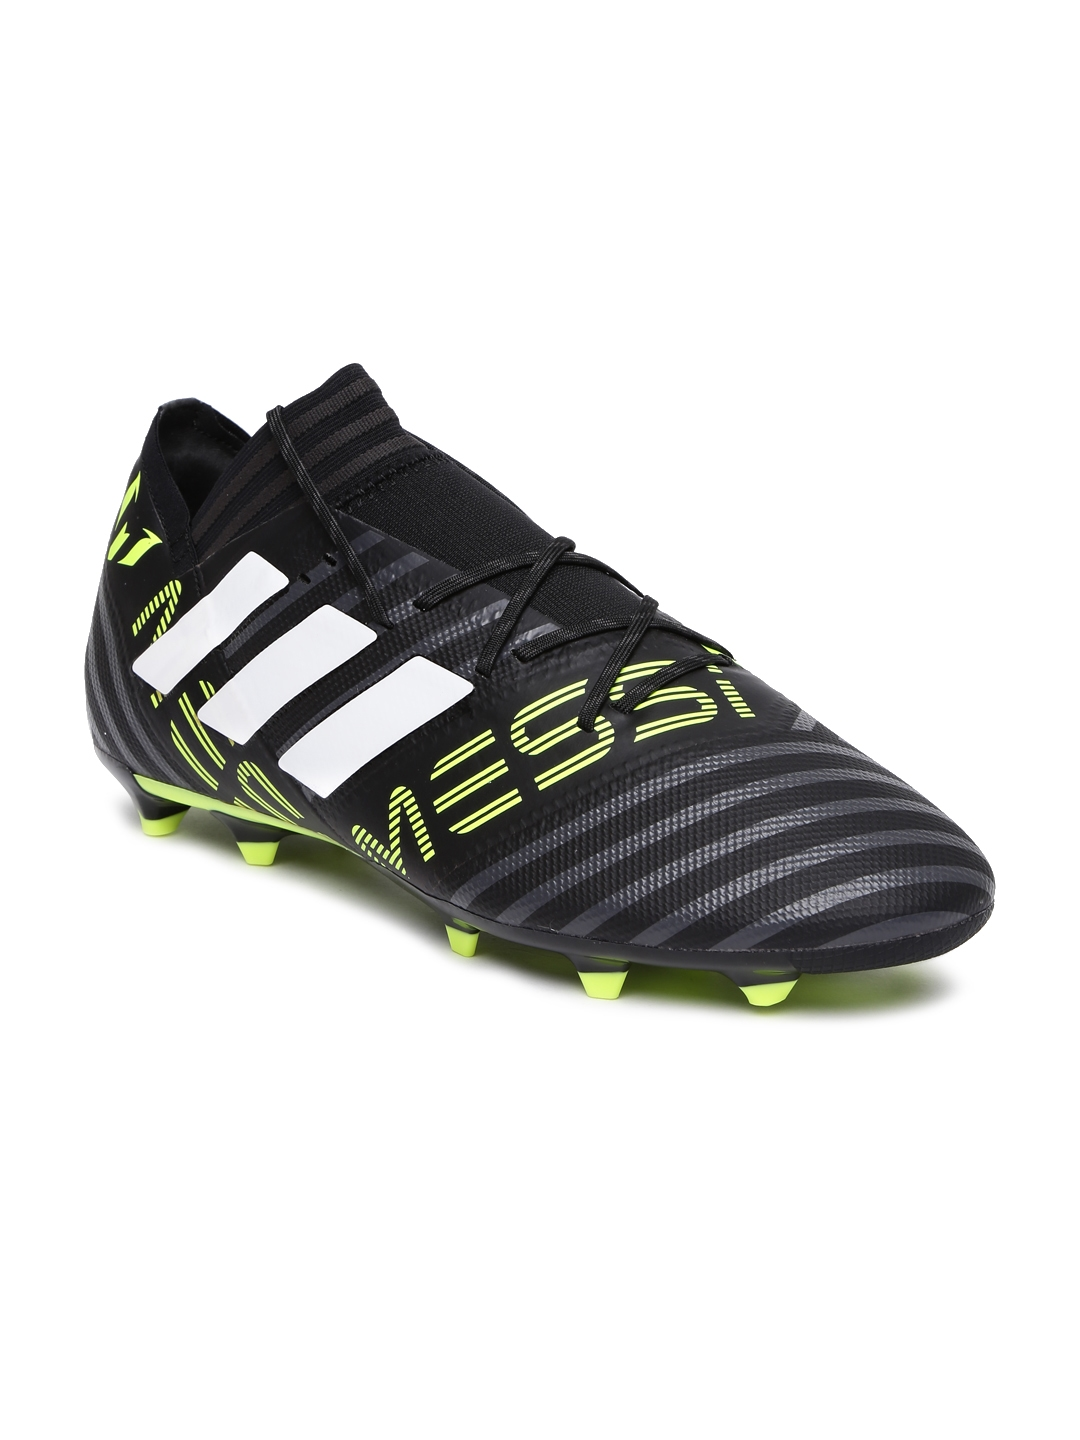 Buy ADIDAS Men Black NEMEZIZ MESSI 17.2 FG Football Shoes - Sports ... b2537bbca